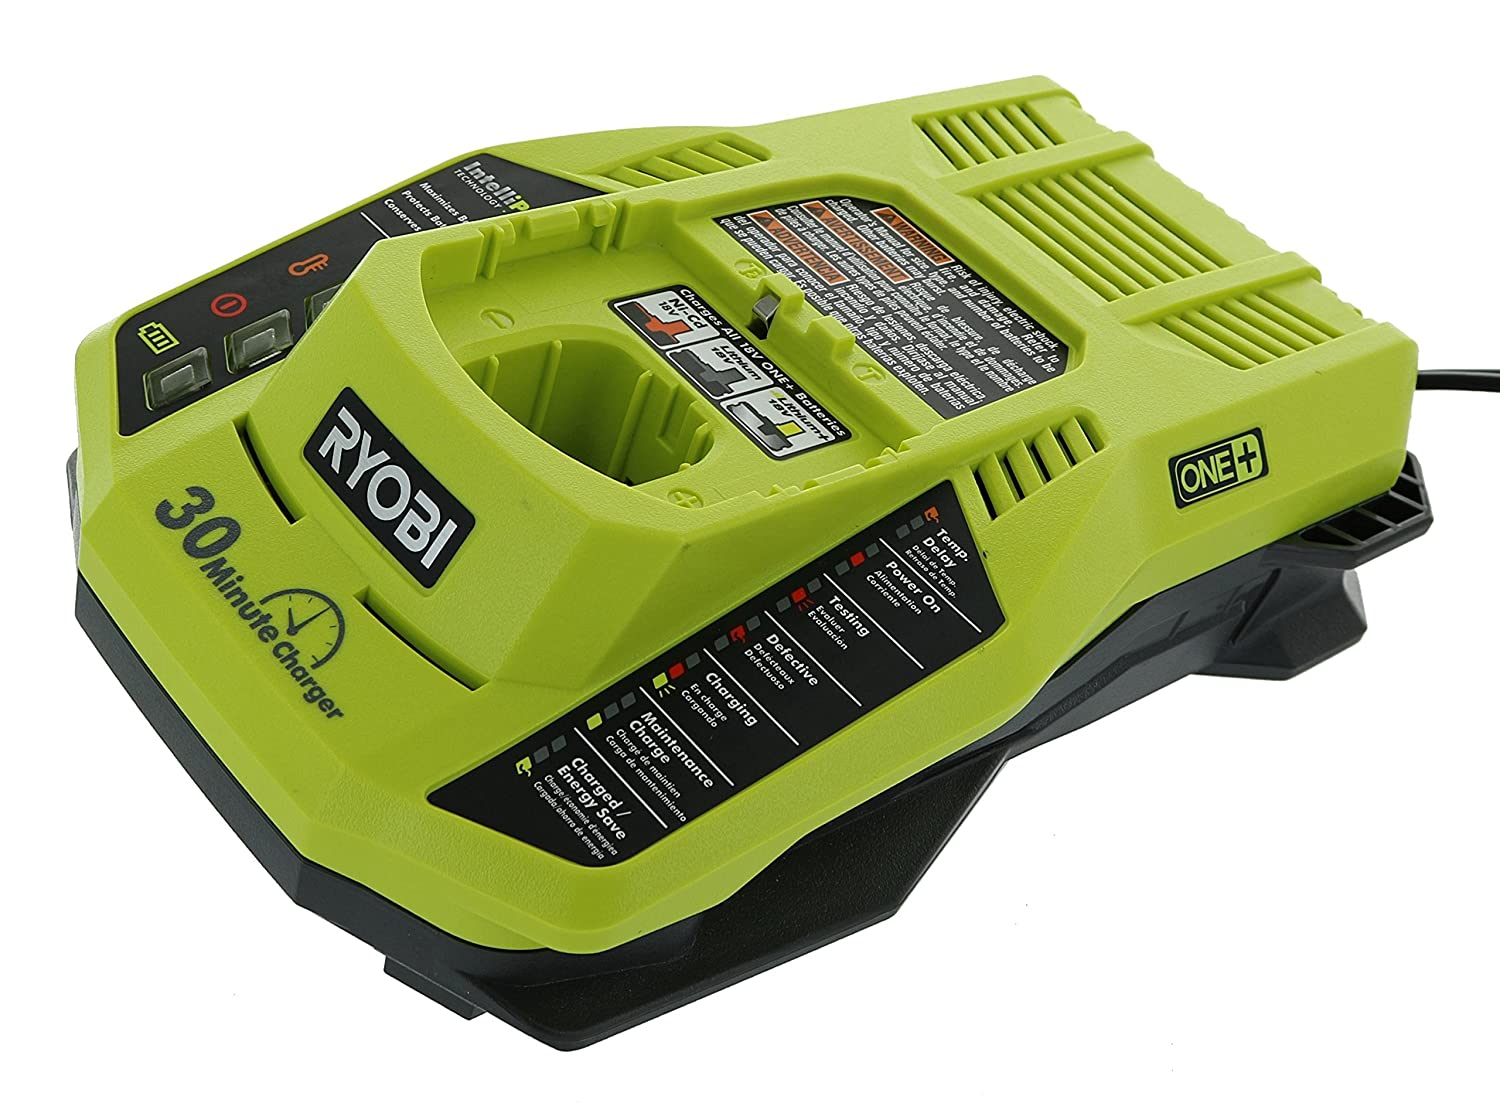 Ryobi P128 18V One+ Lithium-Ion Battery And Intelliport Charger, 10.94 x 11.02 x 3.541 (Certified Refurbished): Amazon.com: Industrial & Scientific